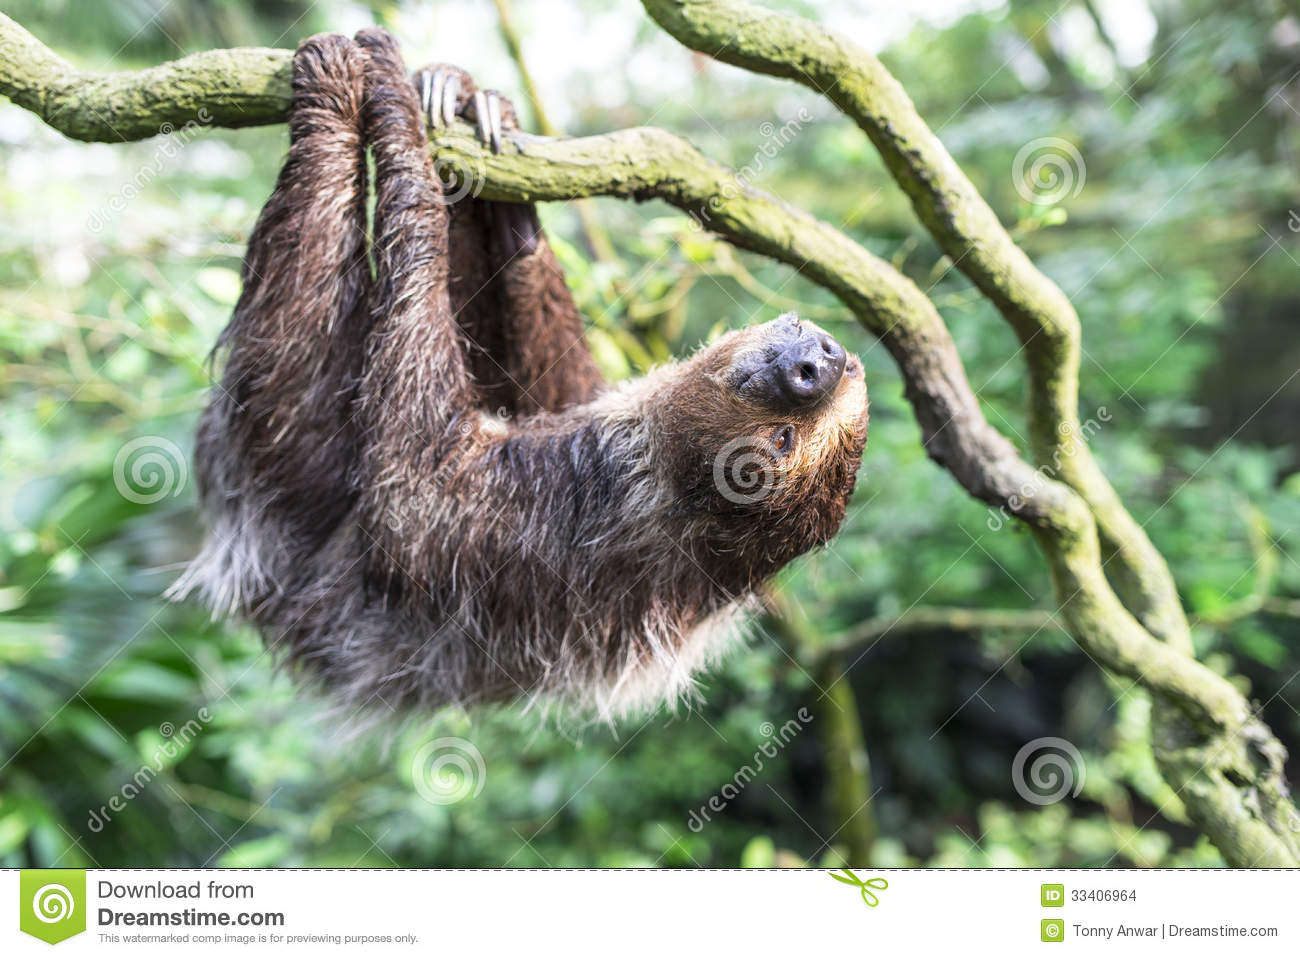 Cute Animal Print Wallpaper Two Toed Sloth Stock Photo Image Of Animal Cute Hairy